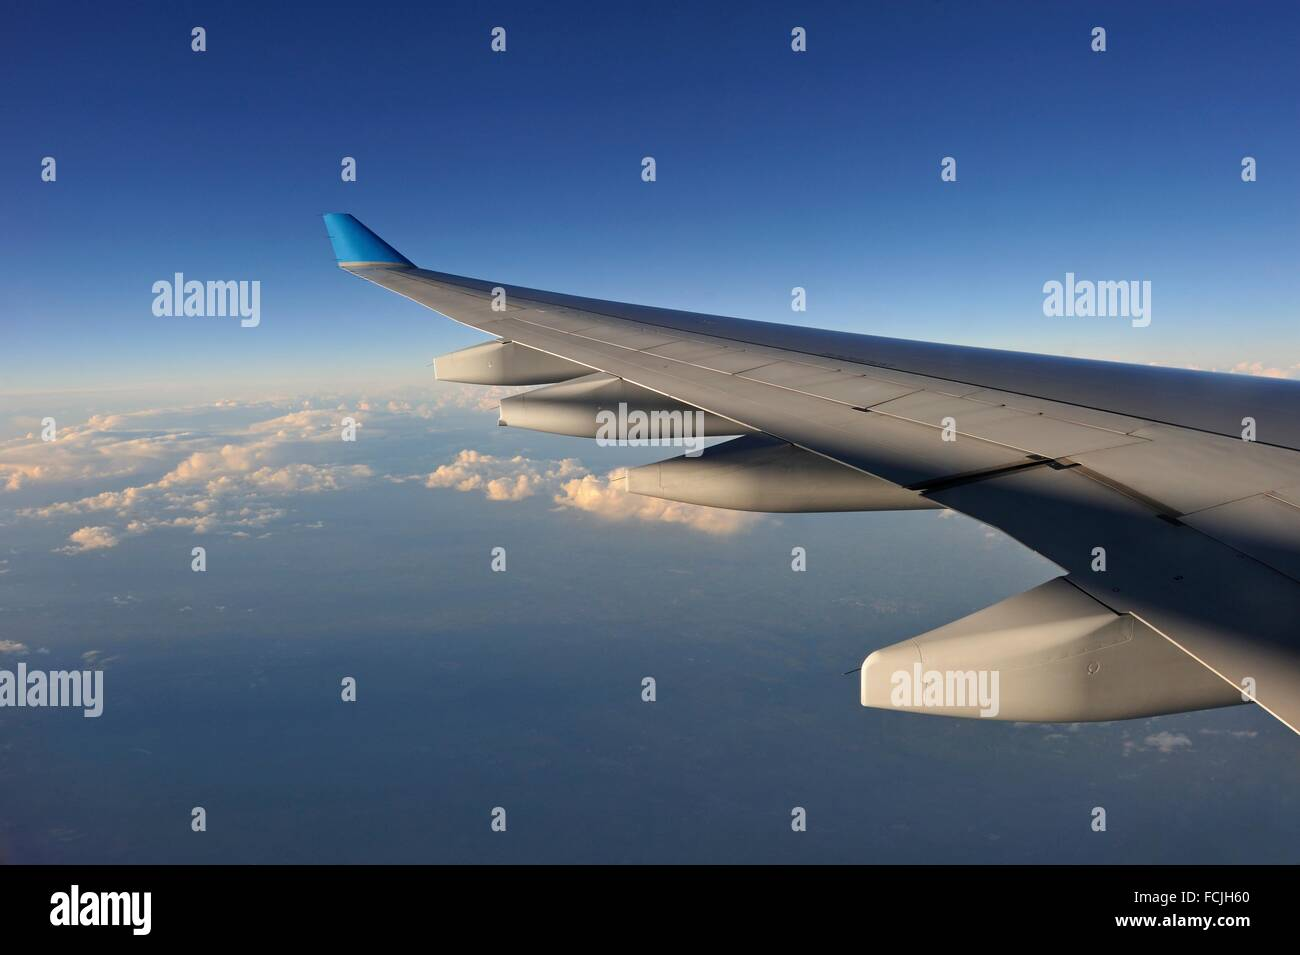 in-flight airliner wing seen through the window. - Stock Image